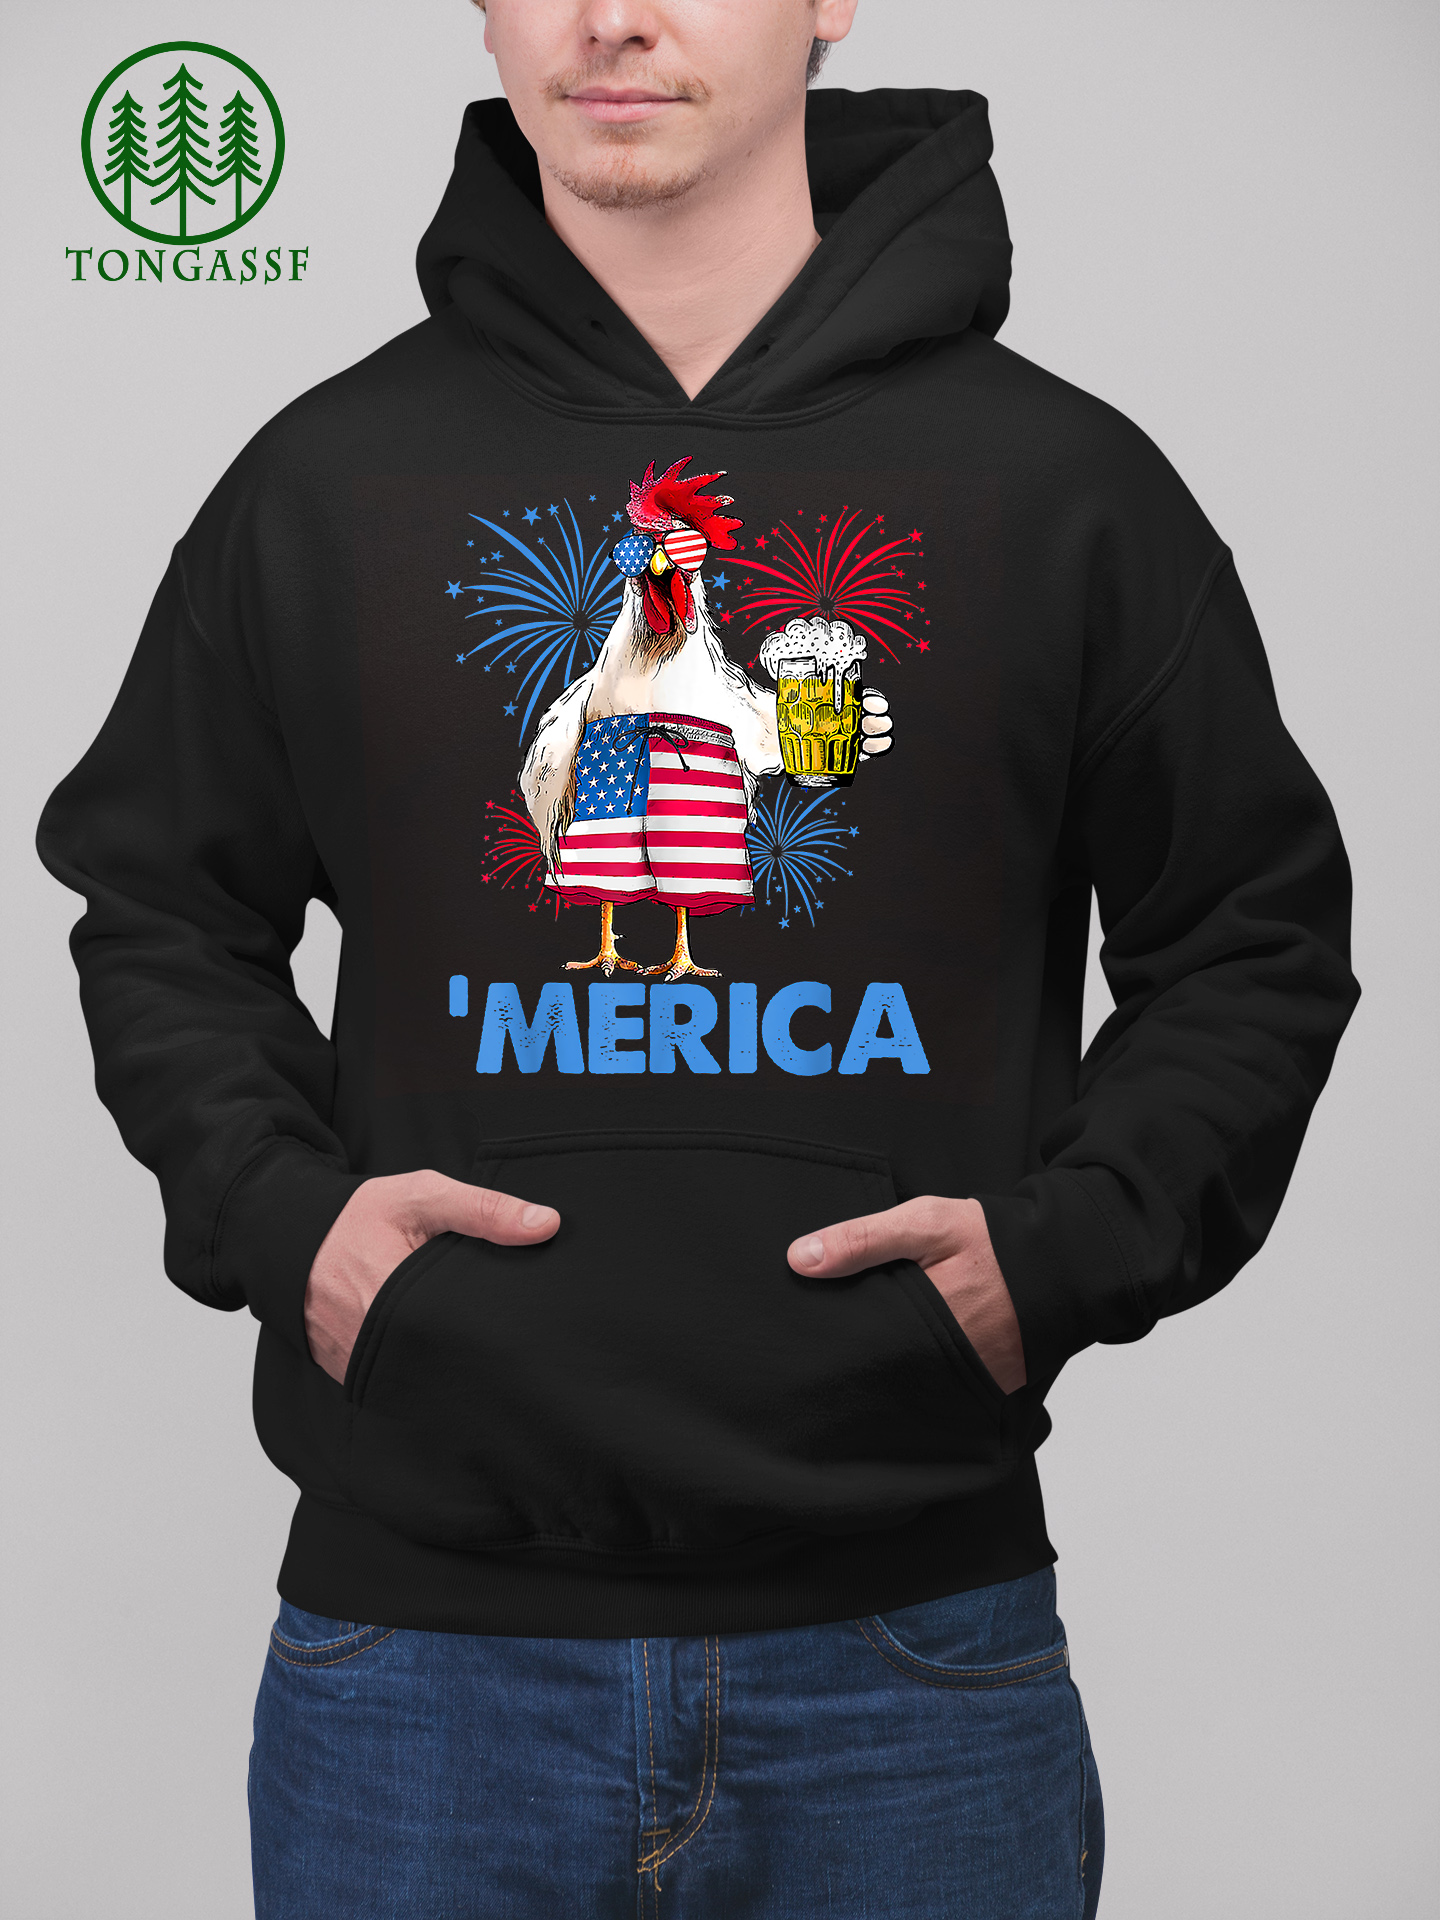 Merica Funny Chicken with beer USA Flag 4th of July Hoodie Shirt